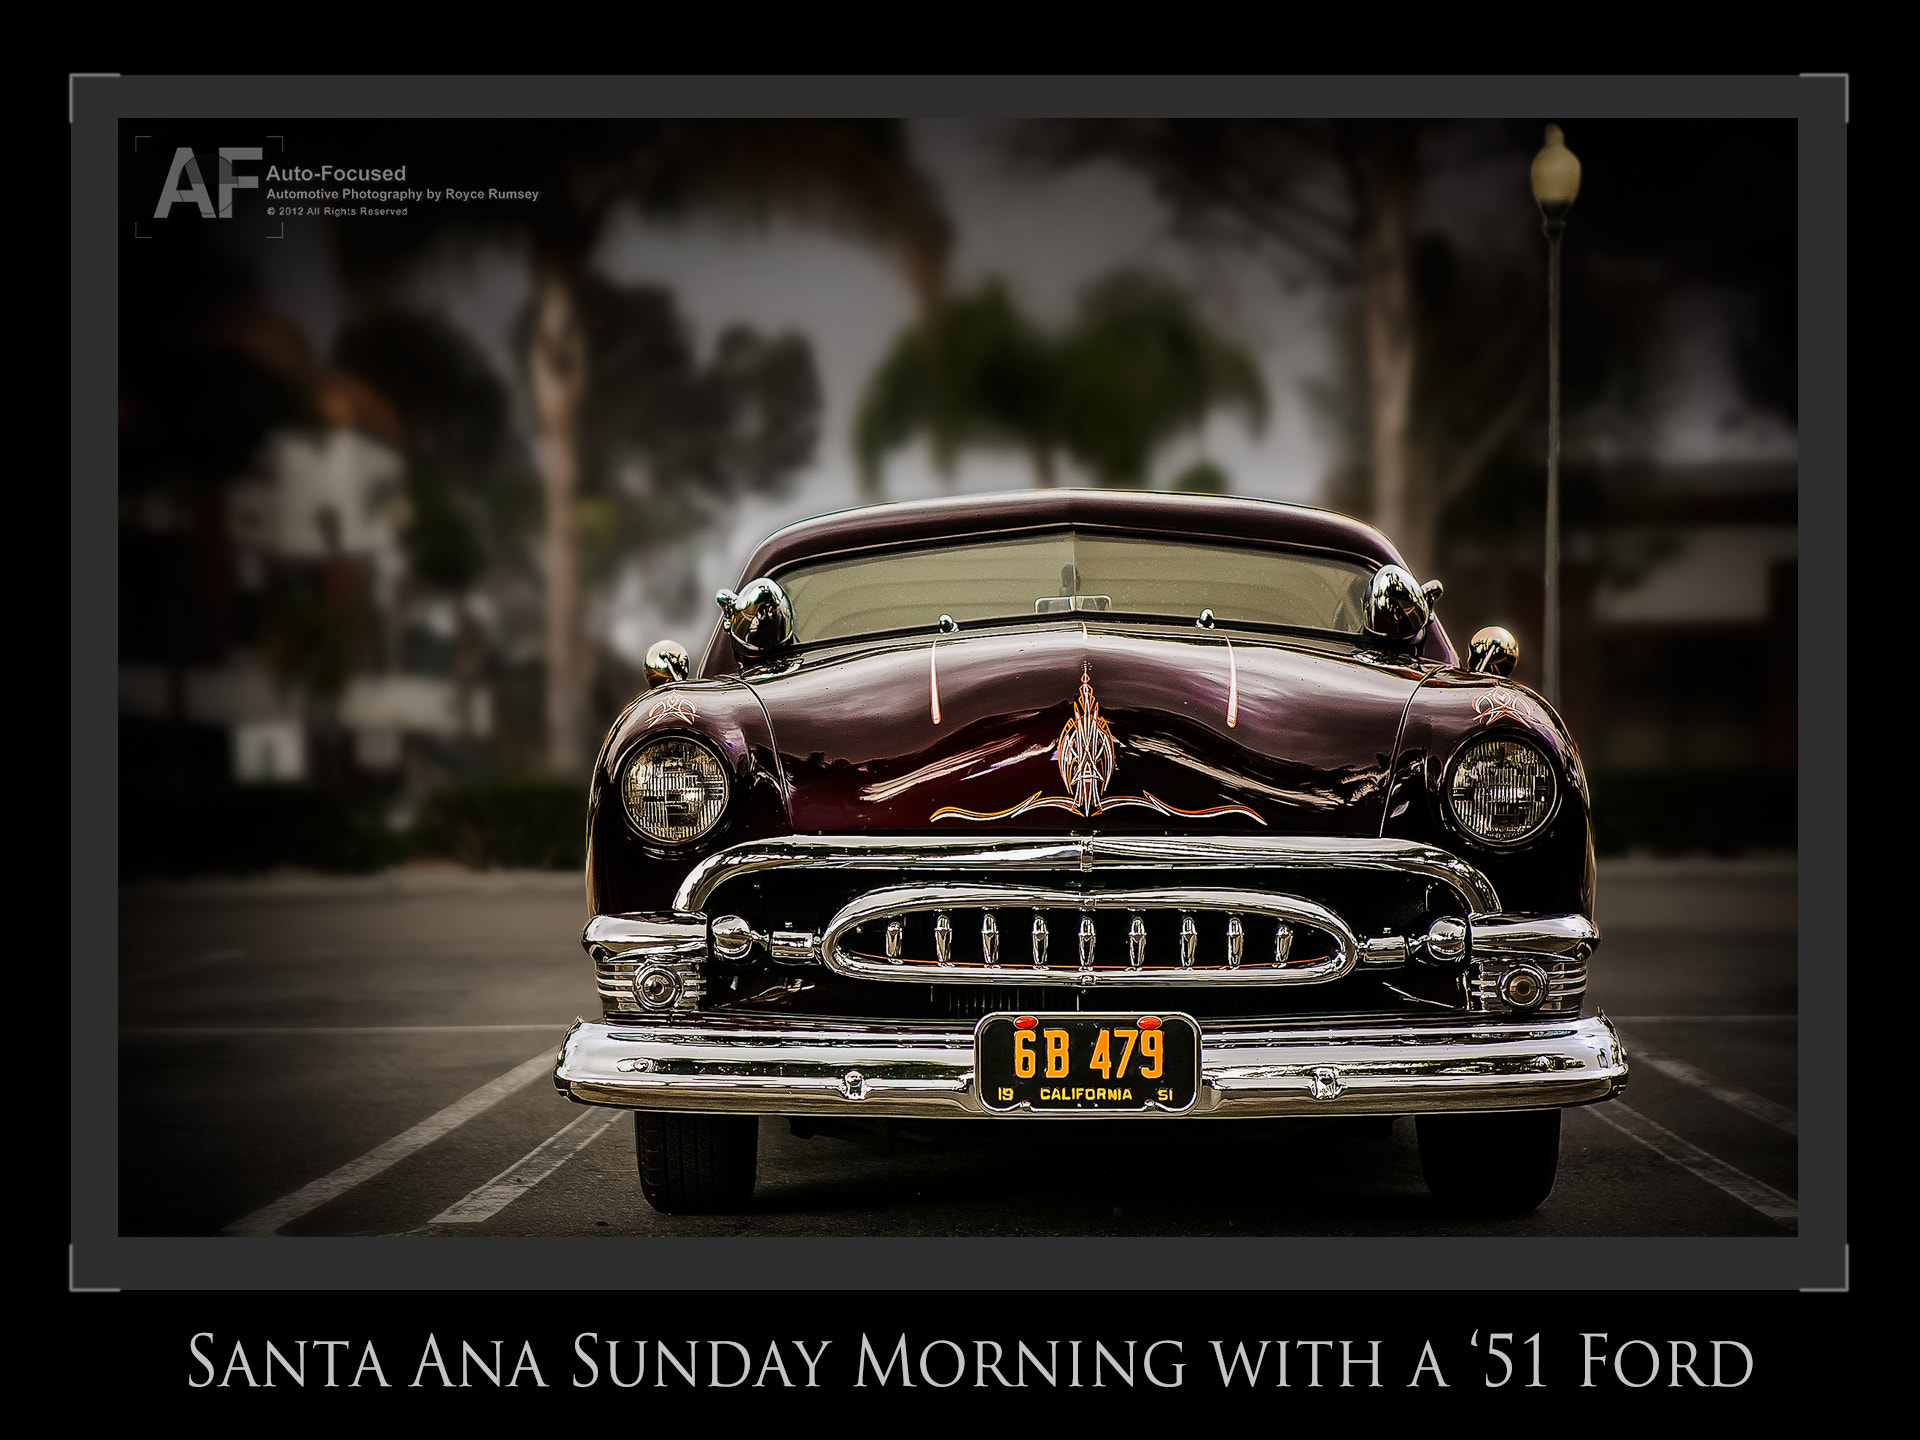 Photograph 51 Ford on an Early Sunday Morning in Santa Ana by Royce Rumsey on 500px